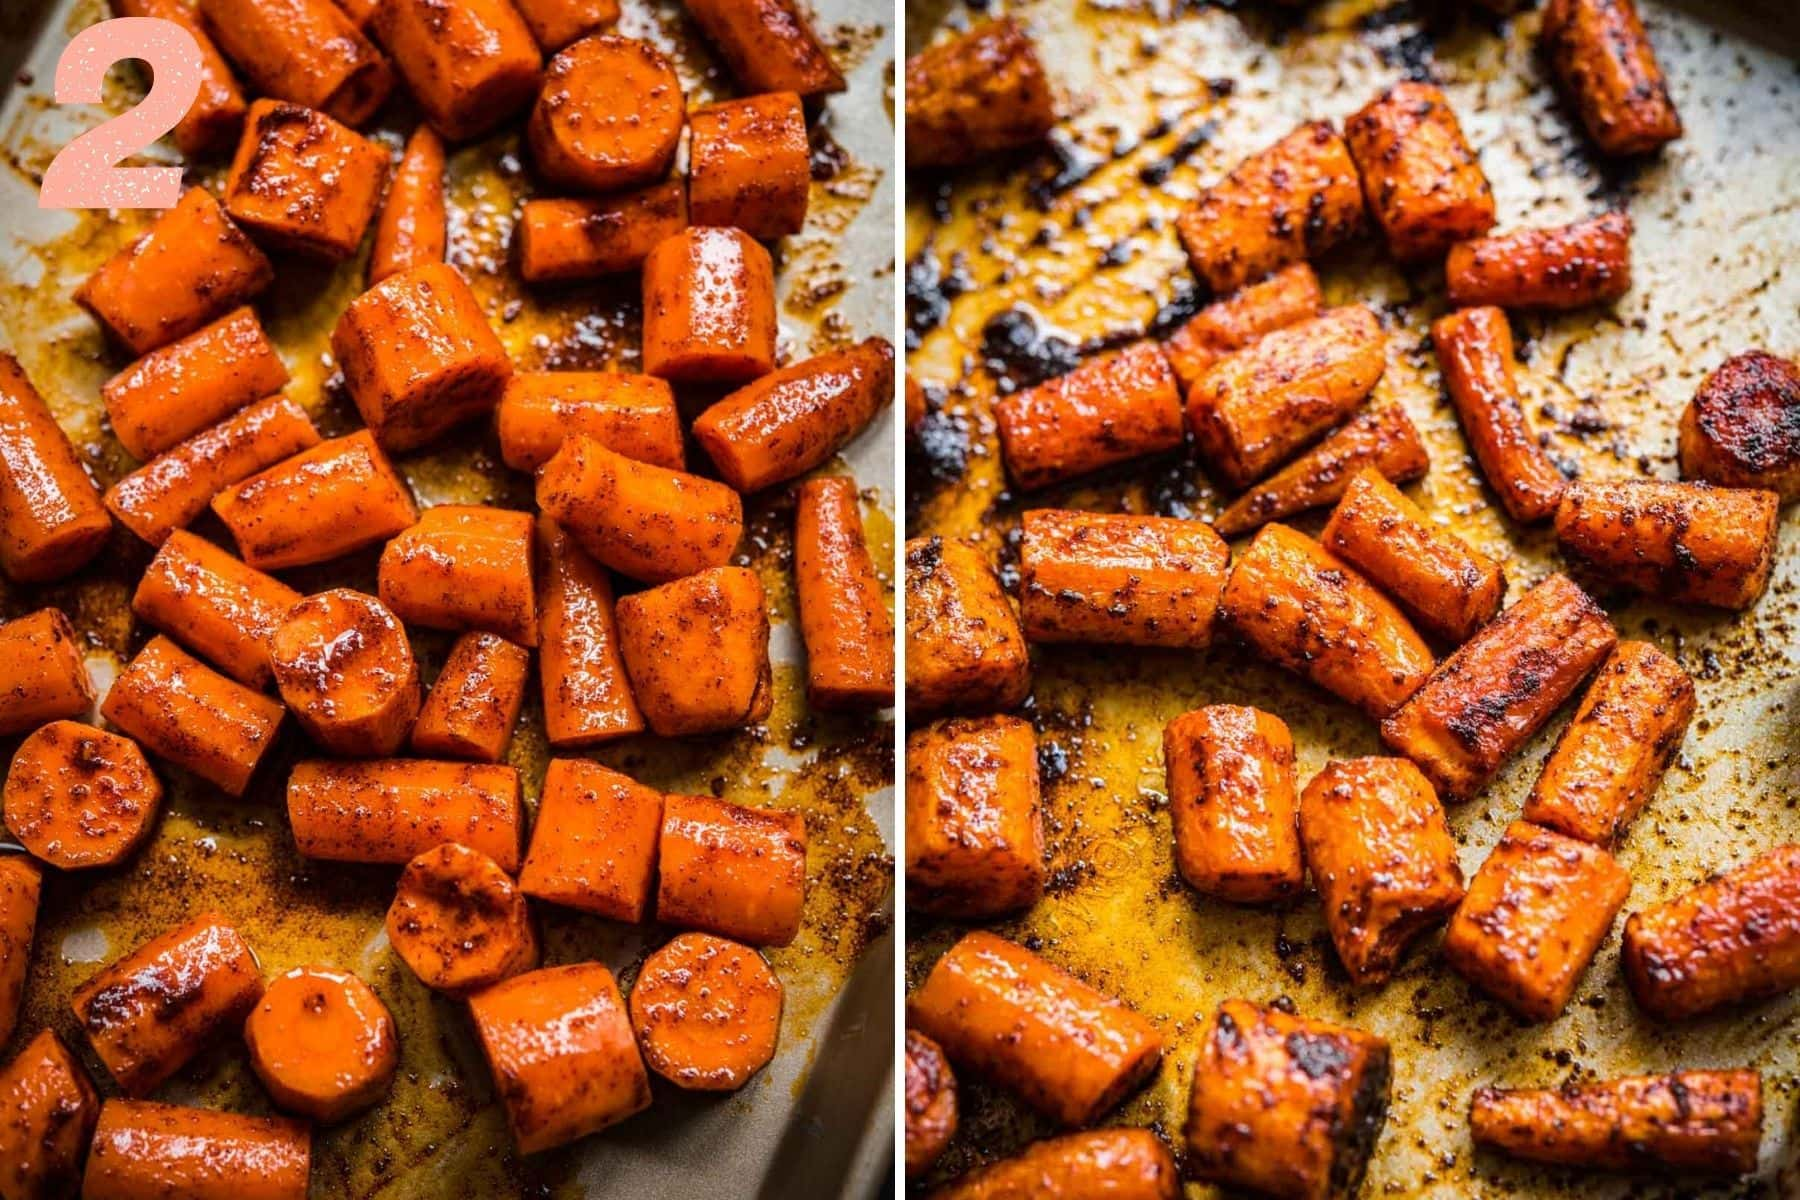 On the left: carrots on a sheet pan before roasting. On the right: carrots after roasting.